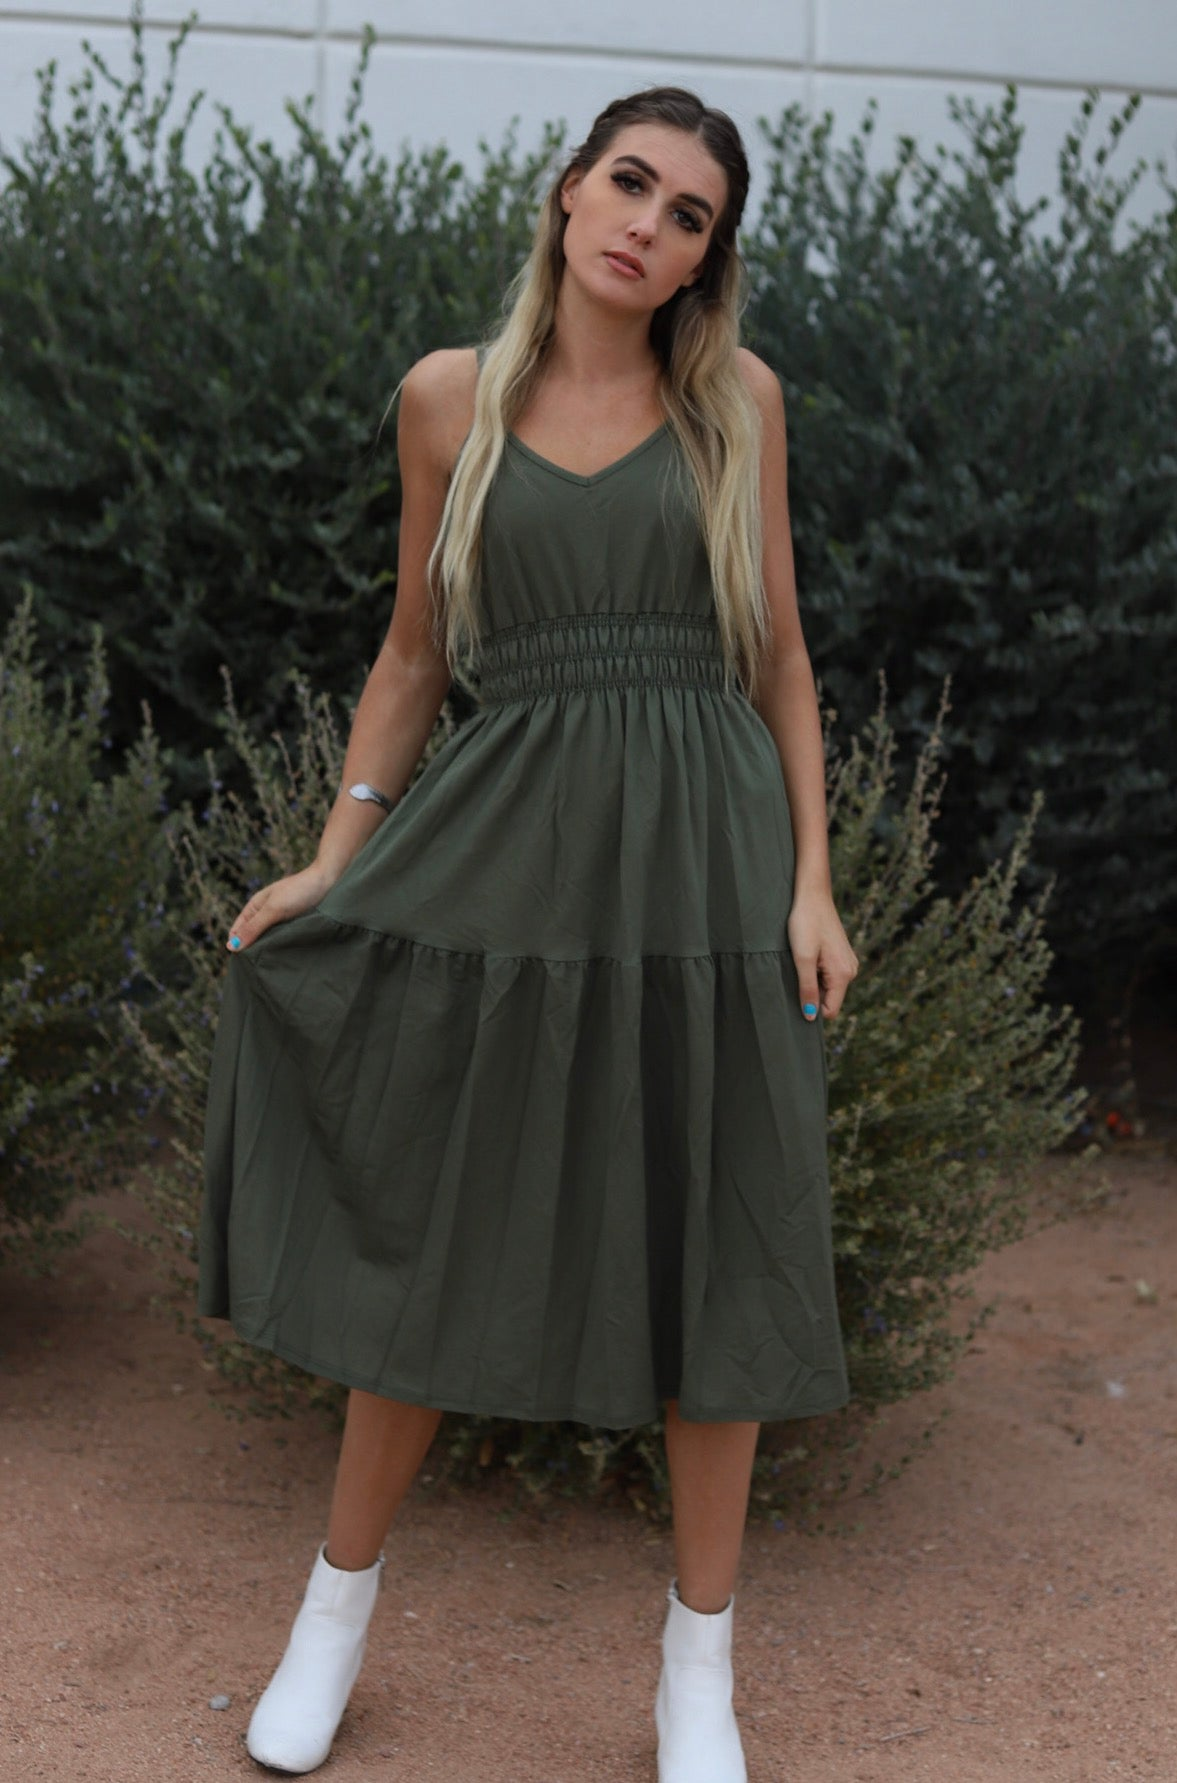 Snatched Dress in Green